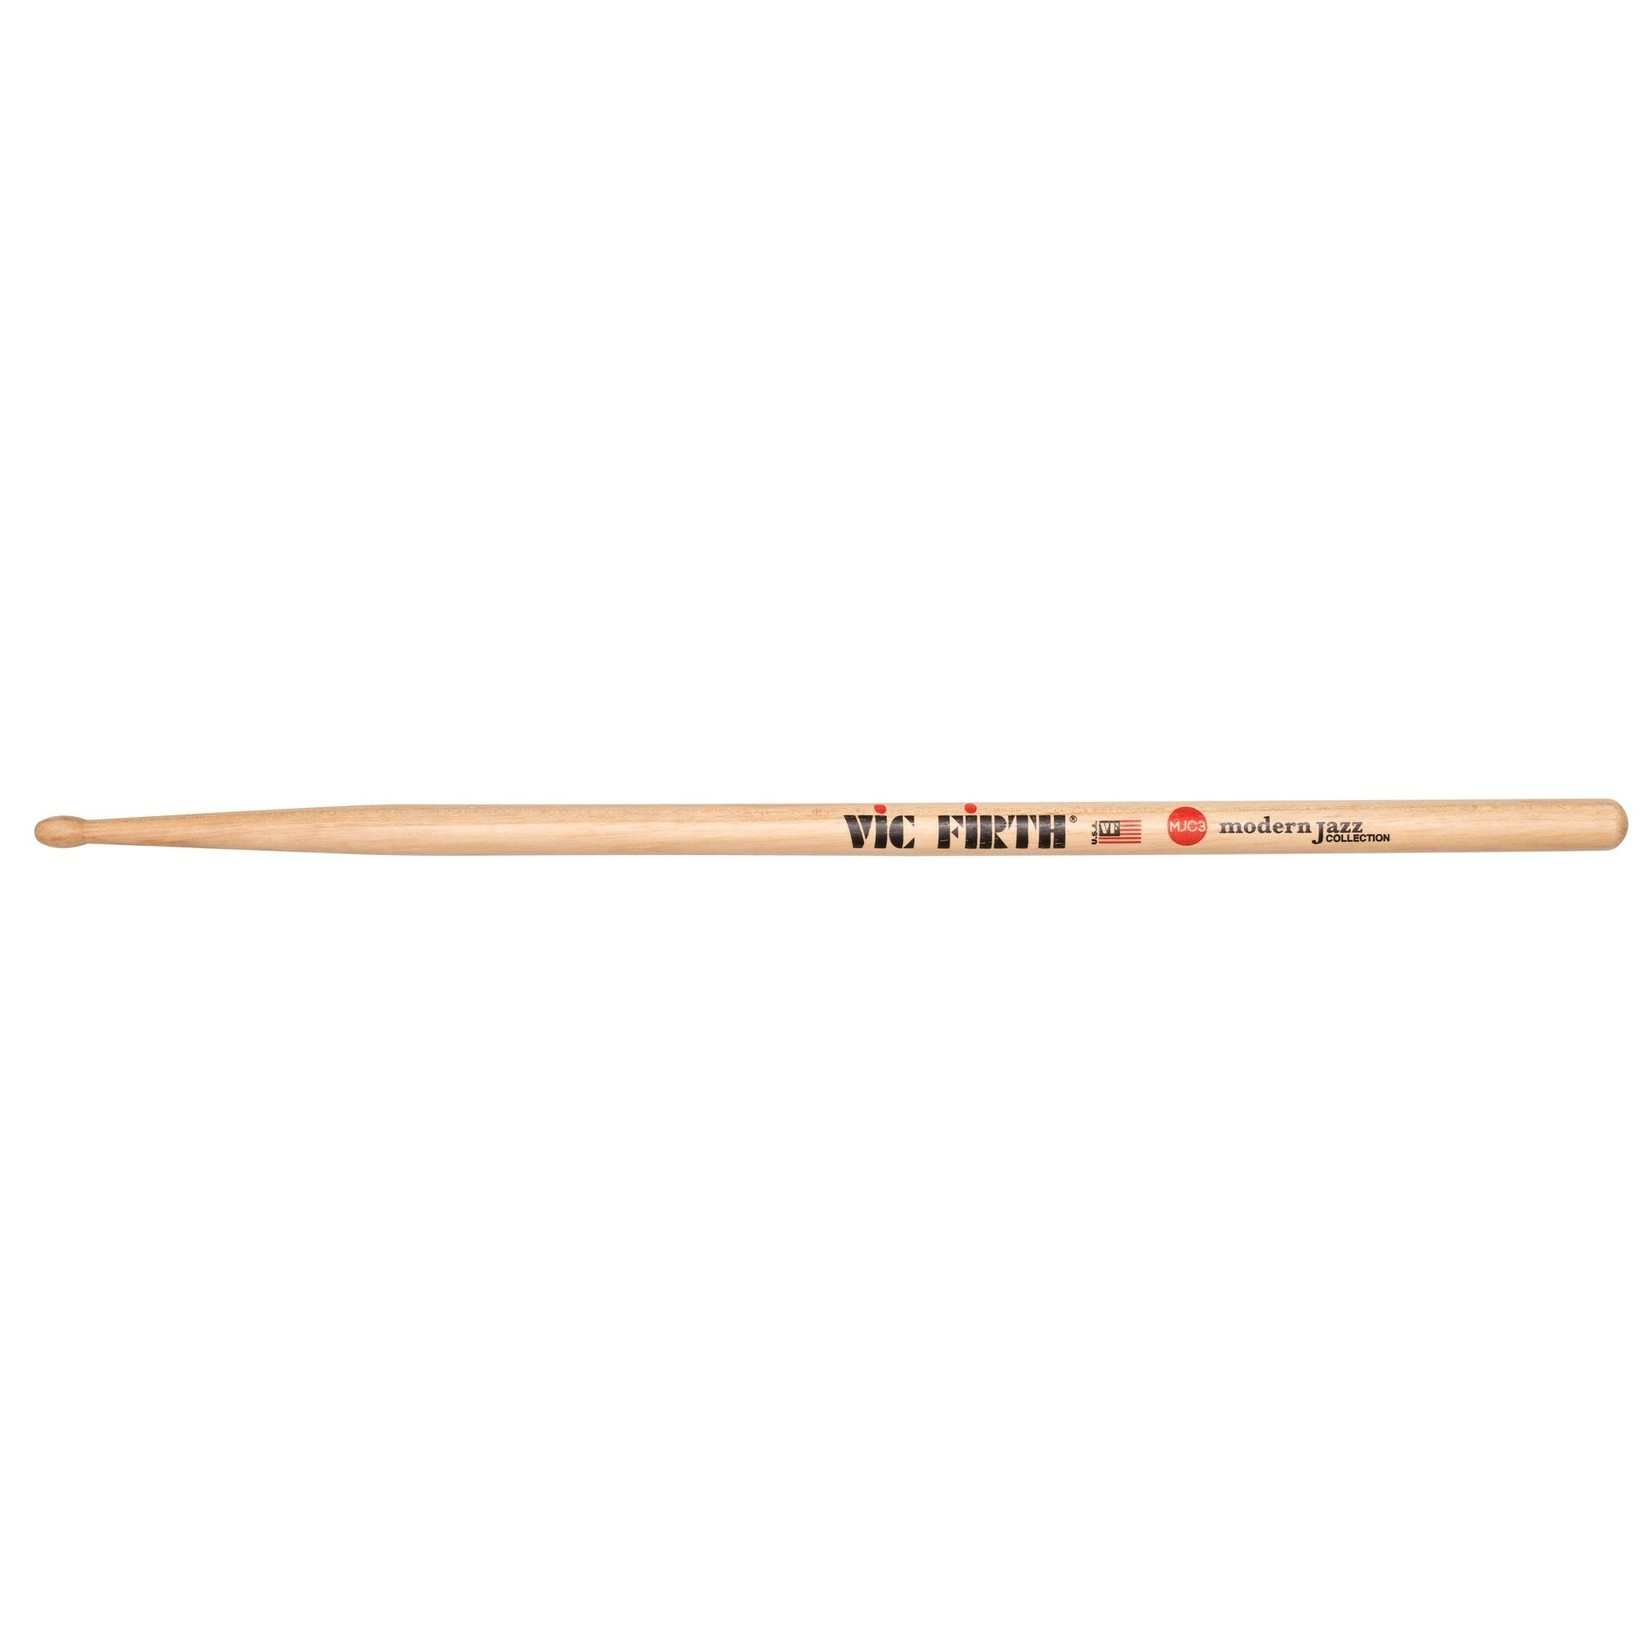 Vic Firth Vic Firth Modern Jazz Collection - 3